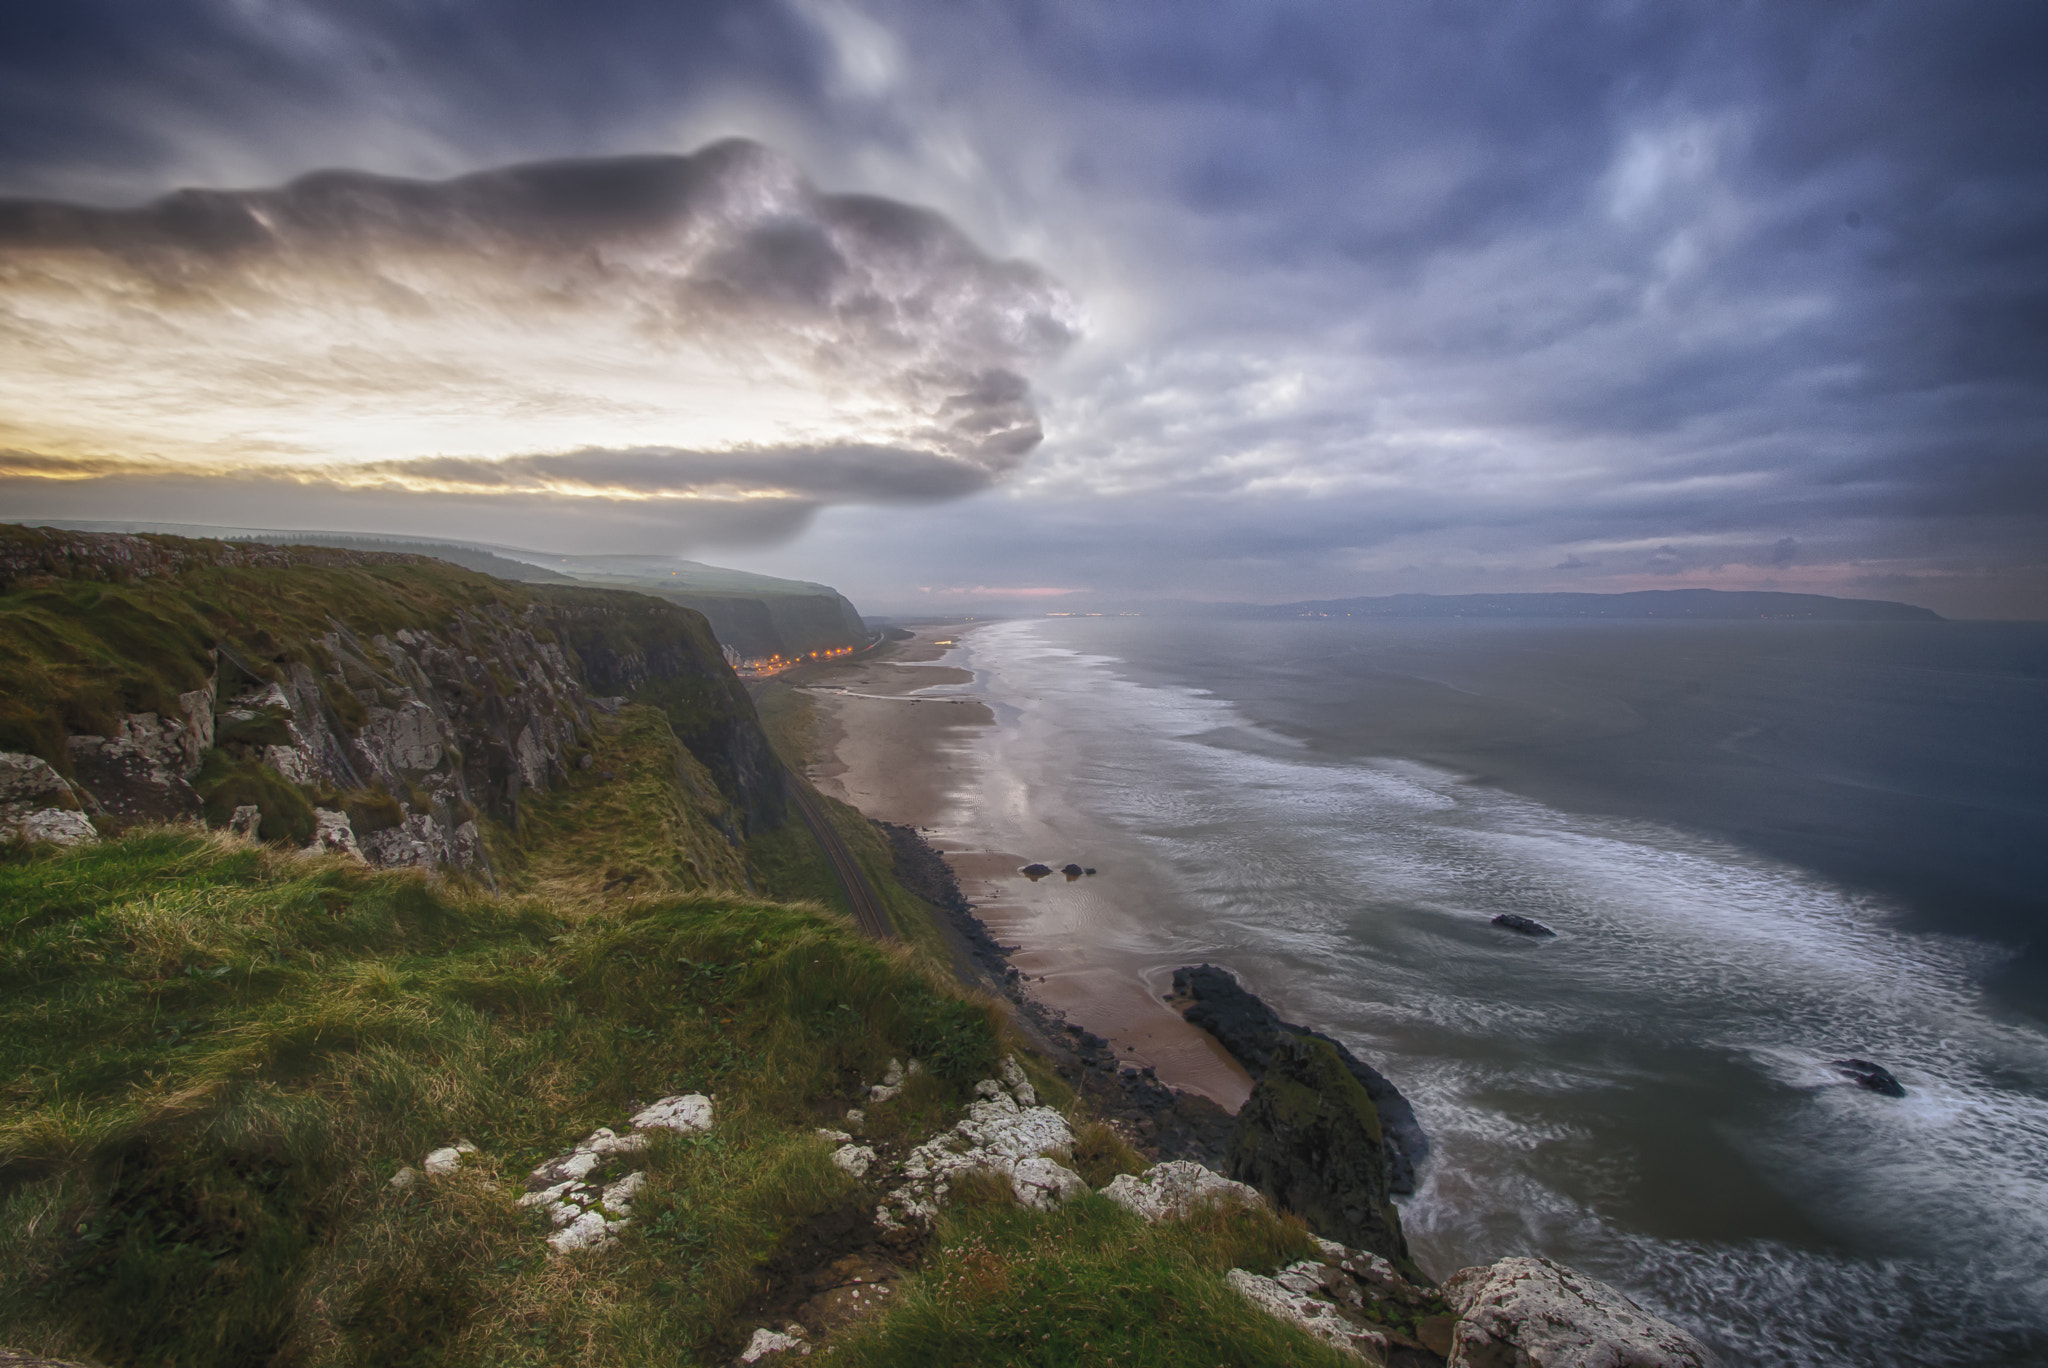 Photograph DOWNHILL BEACH FROM ABOVE by Sam Smallwoods on 500px